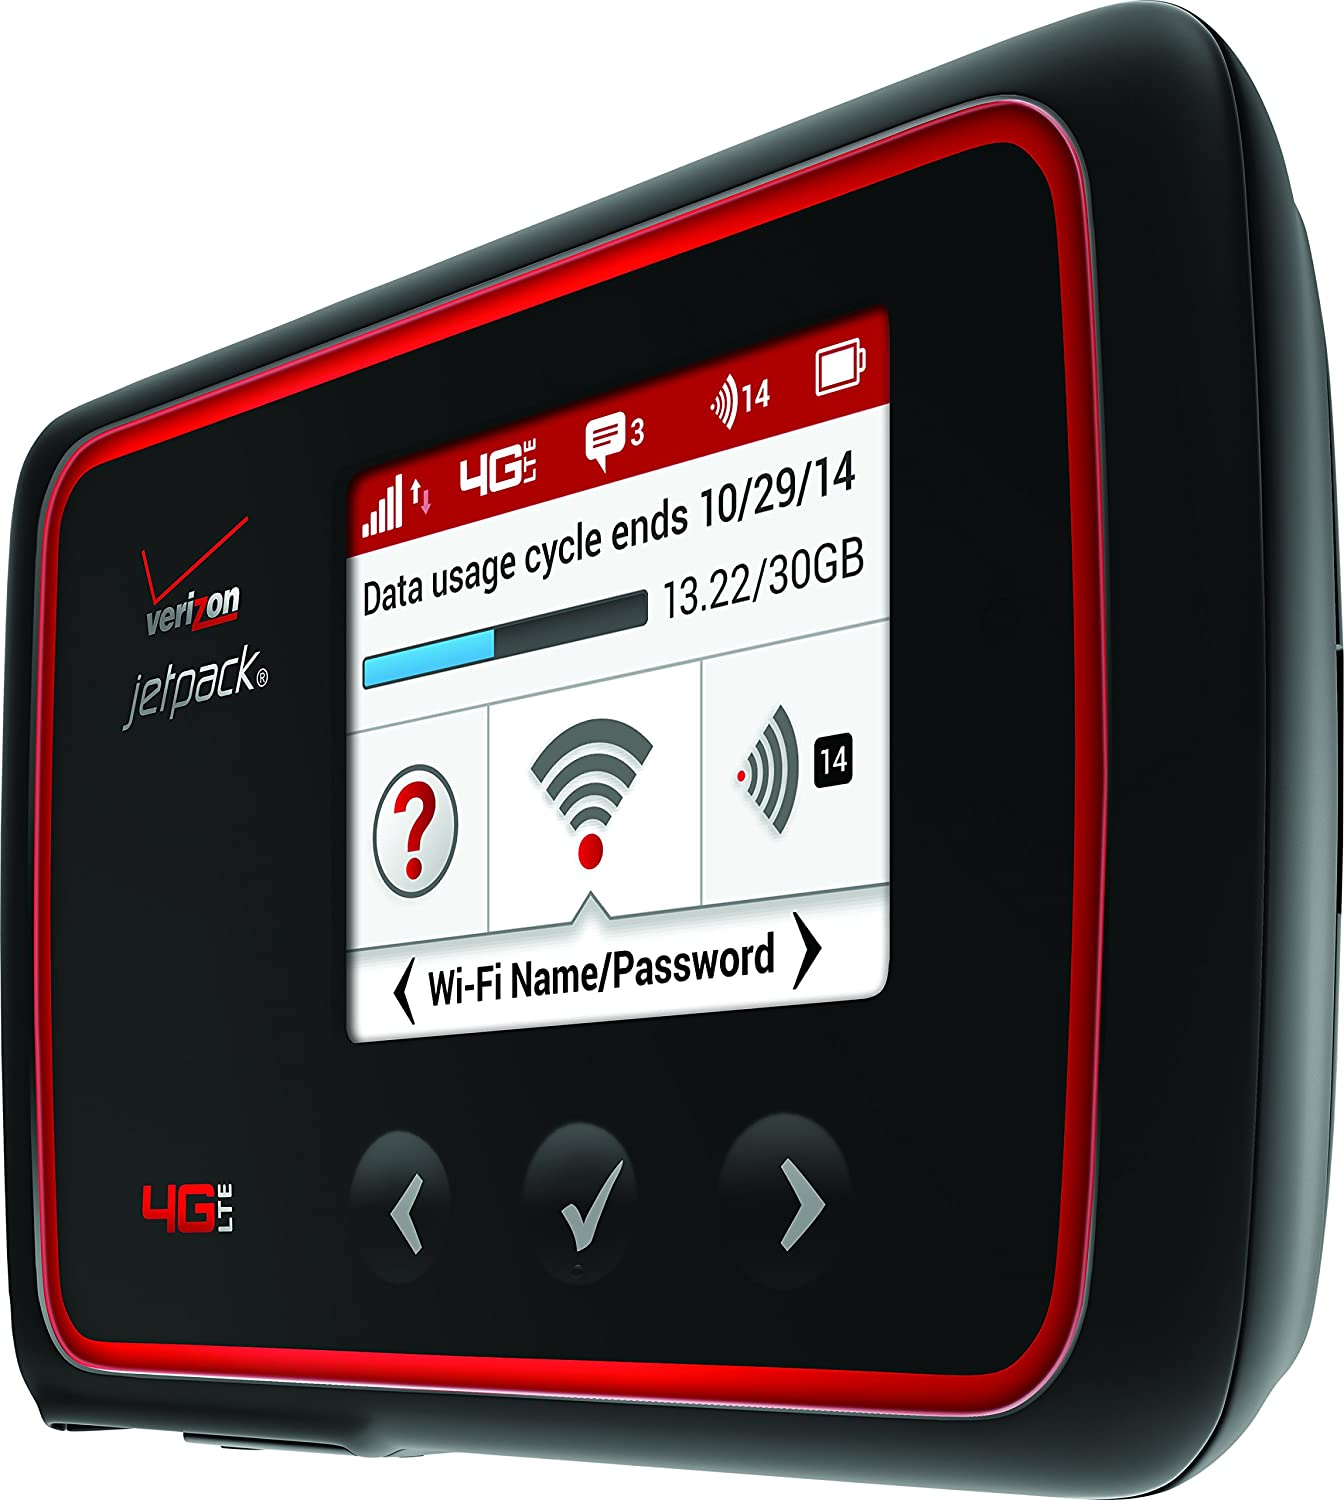 Amazon Com Verizon Mifi 6620l Jetpack 4g Lte Mobile Hotspot Verizon Wireless